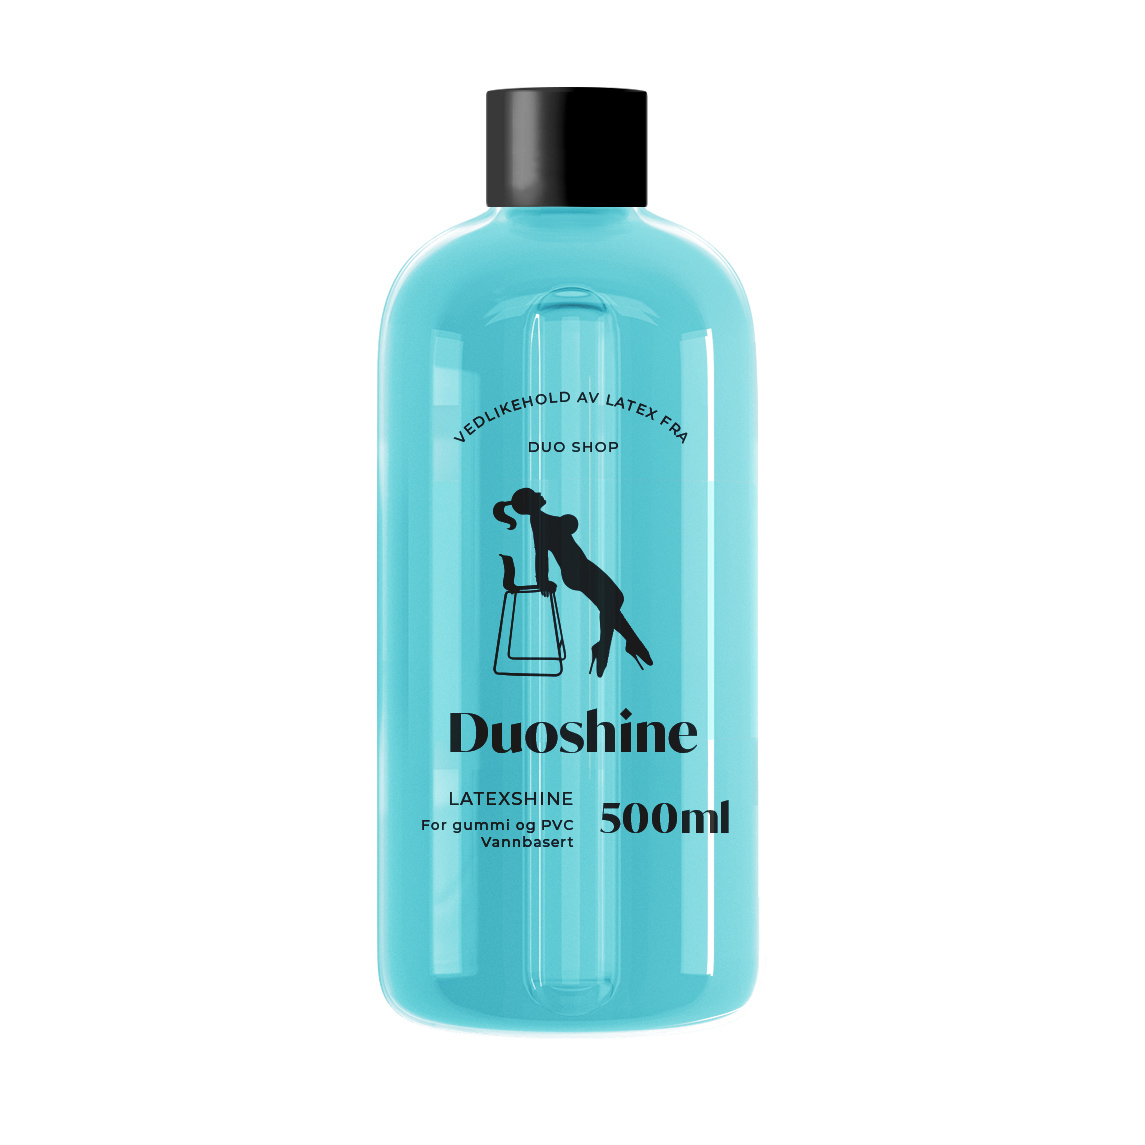 DuoShine Vannbasert Latexshine 500ml